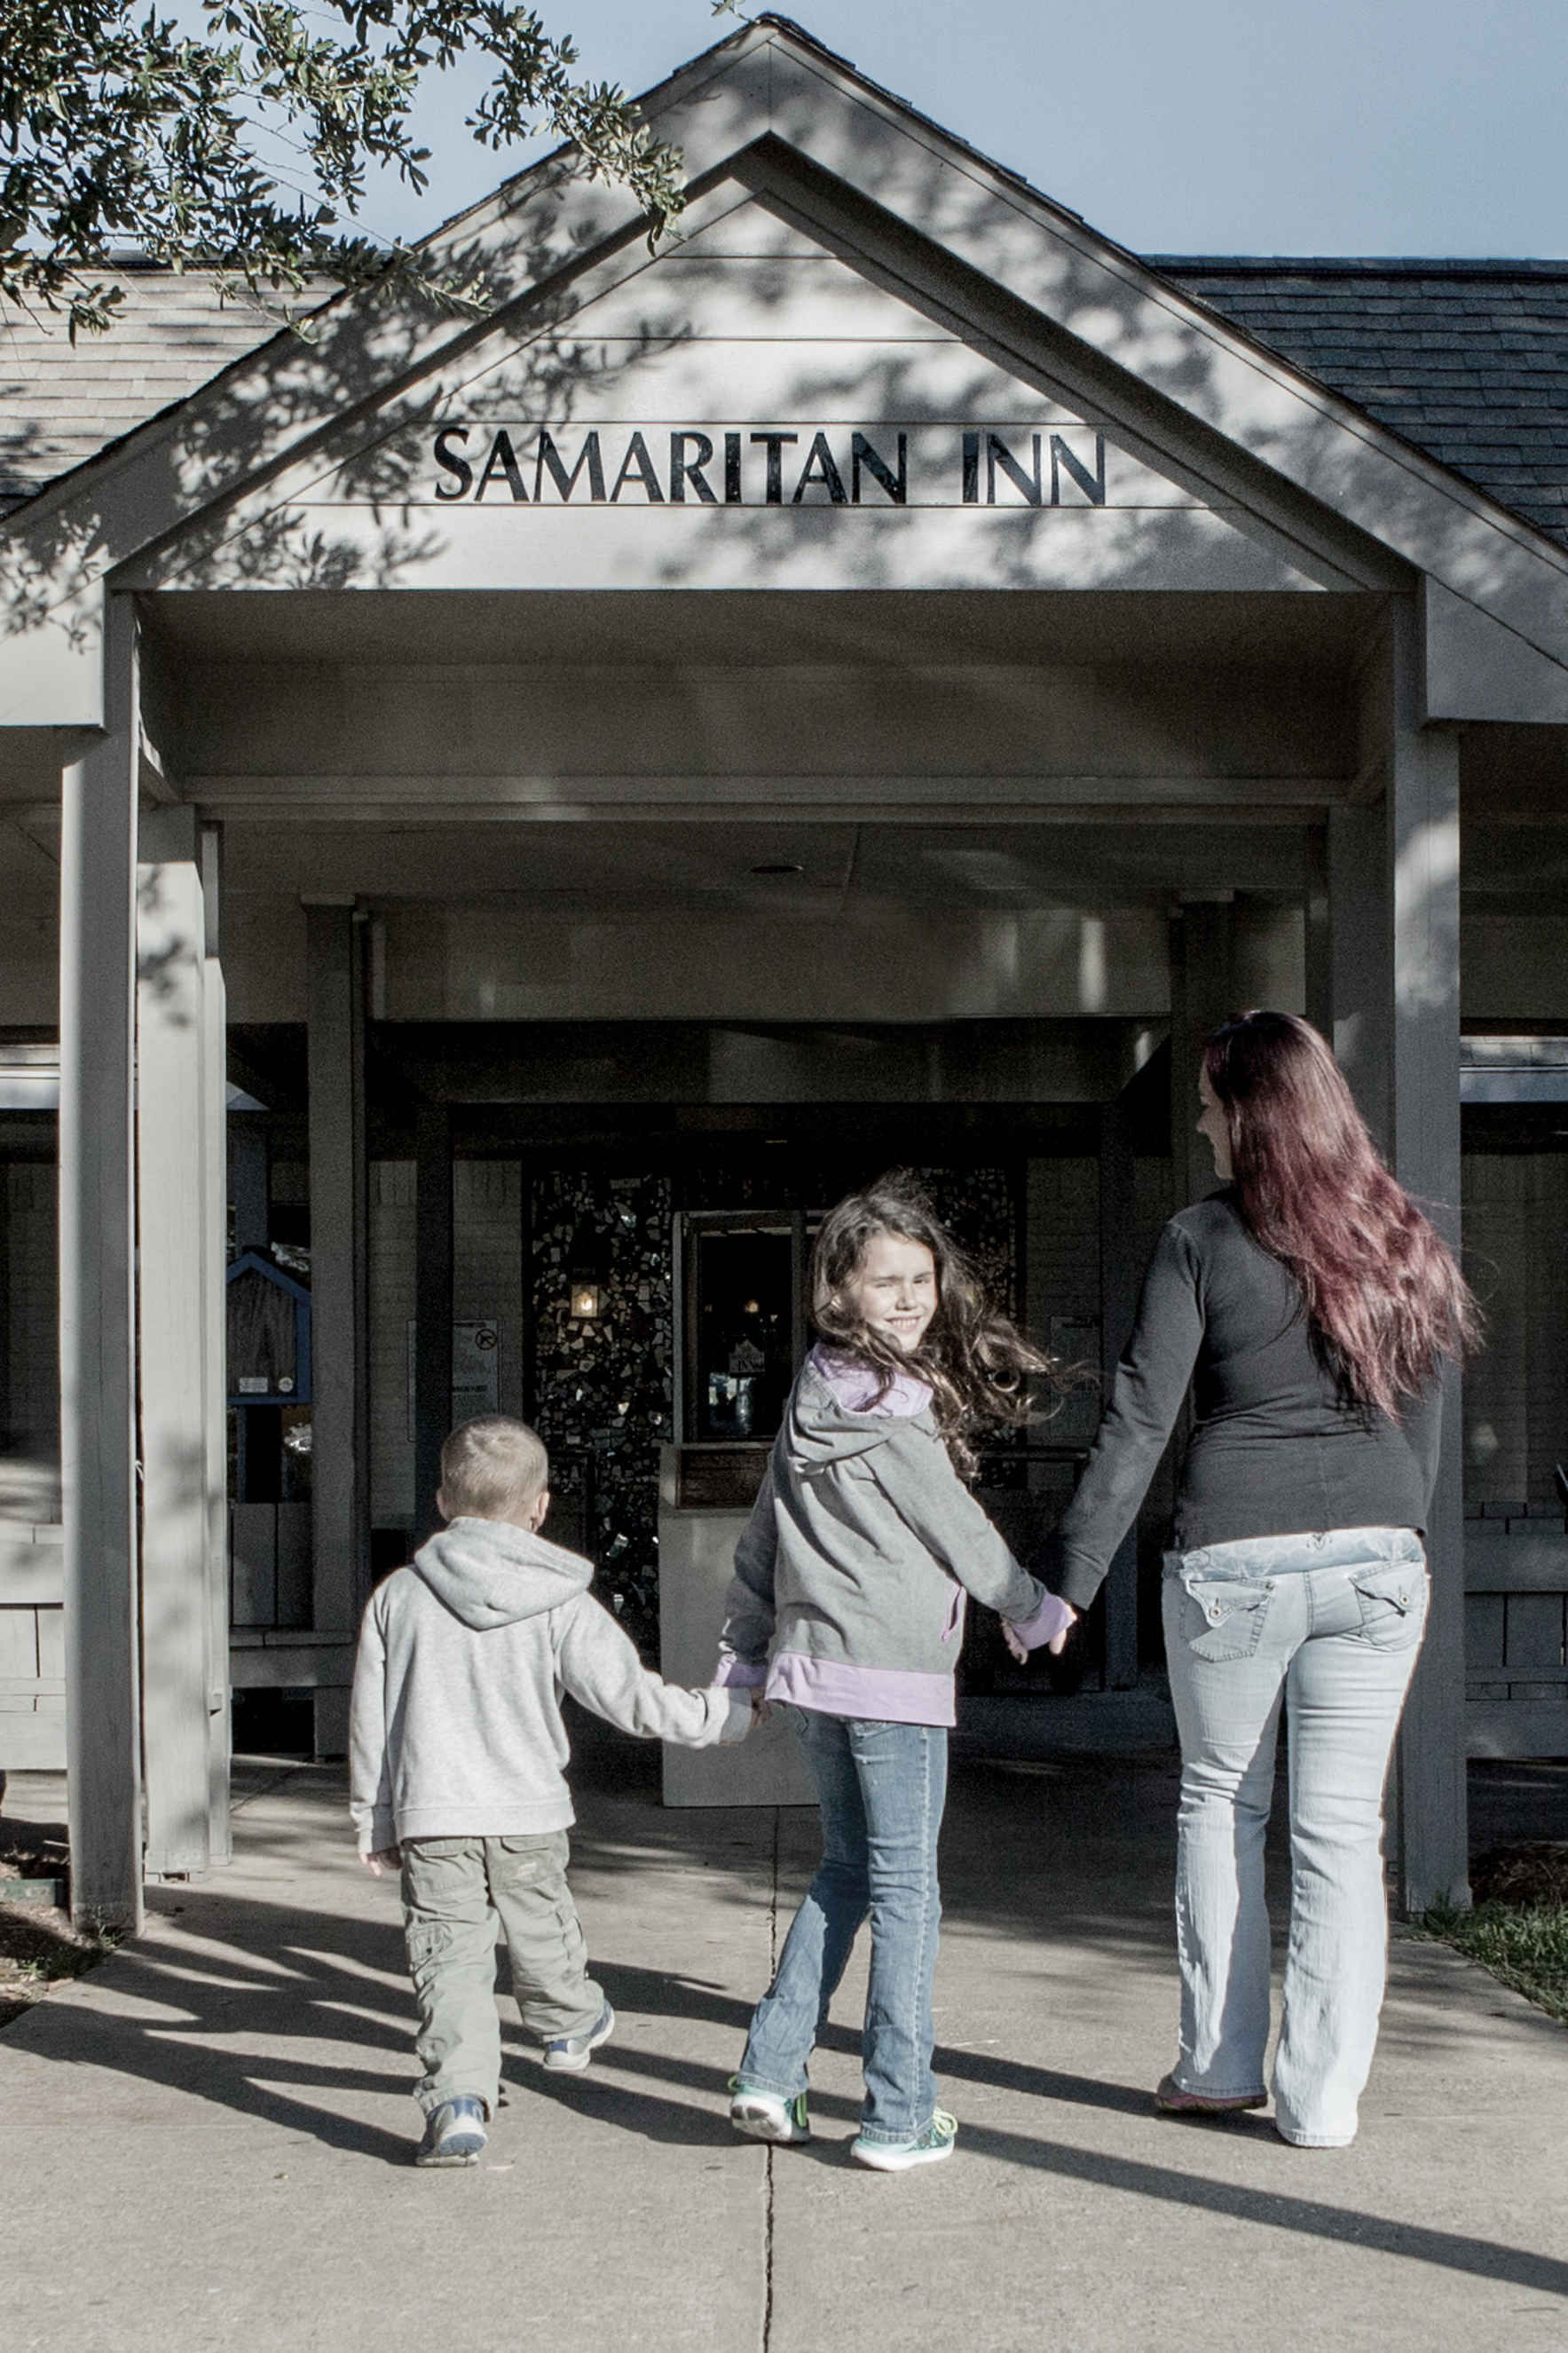 Donate now to support the programs provided by The Samaritan Inn. image